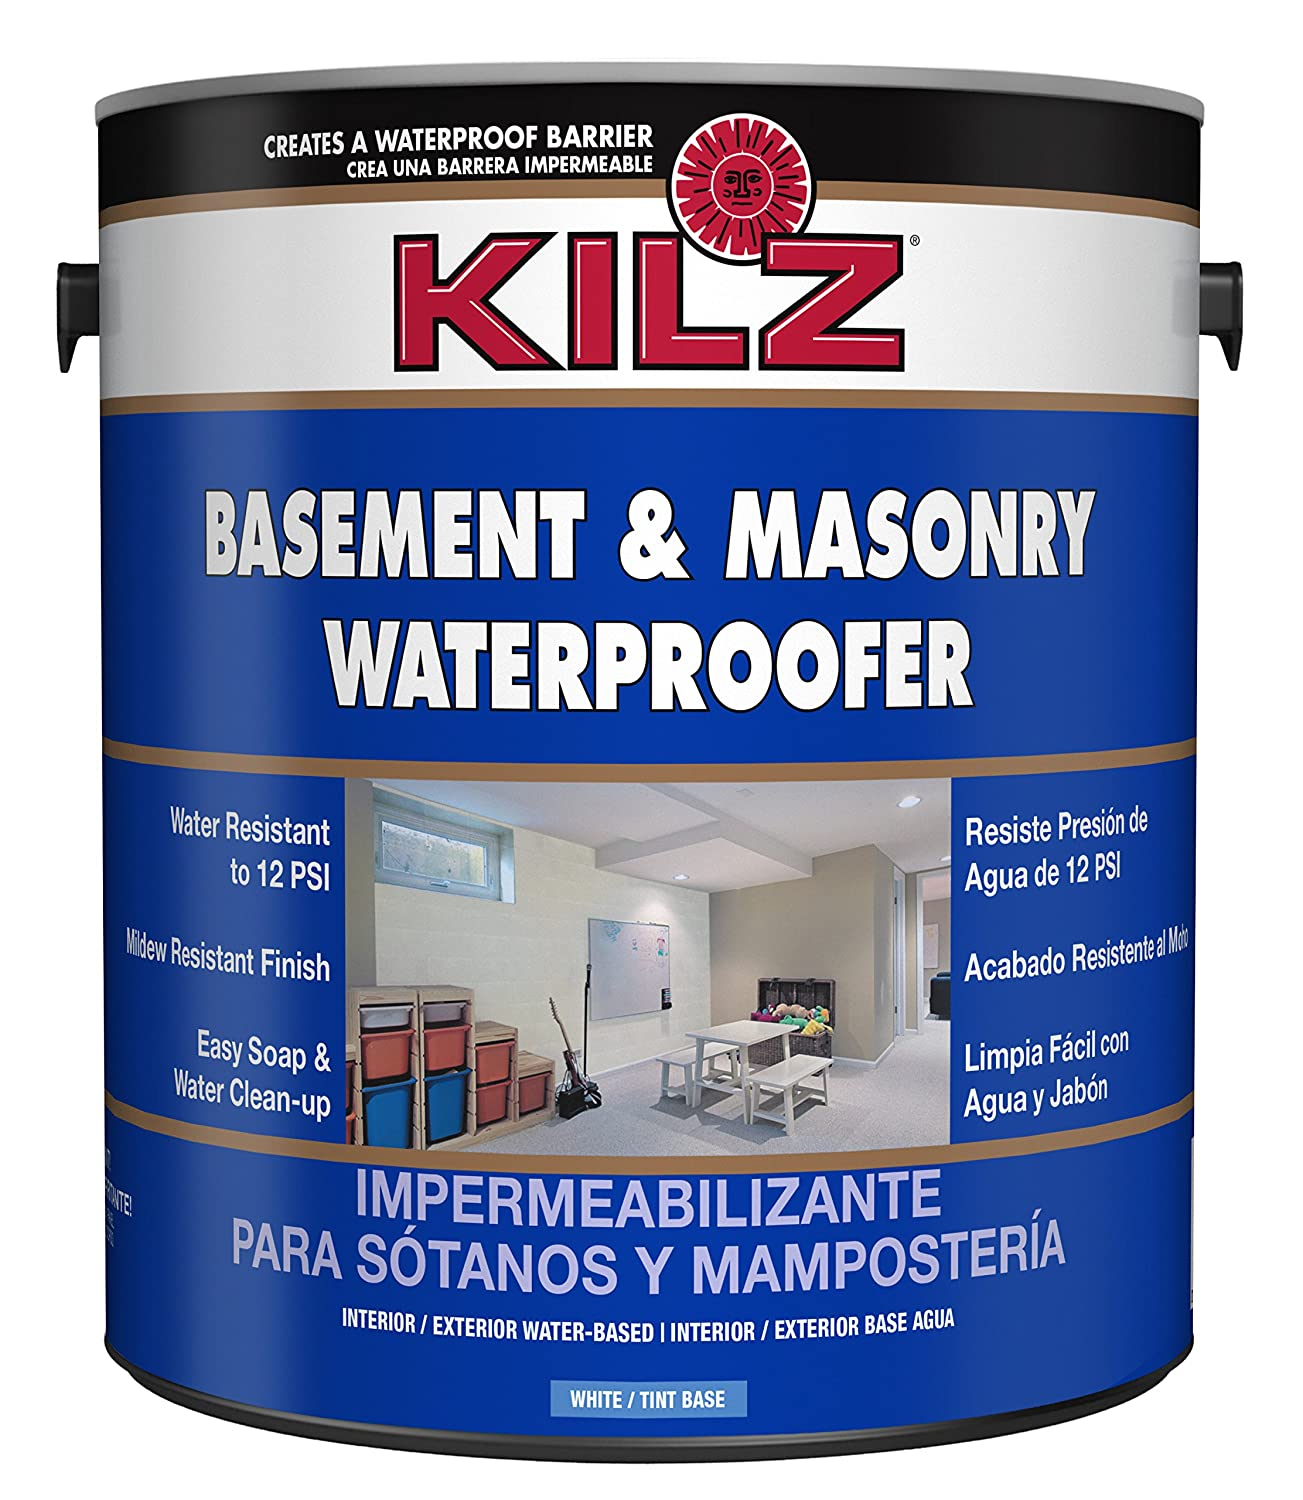 Reasons To Use The Water Sealant Paint For Basement Kilz Interior-exterior Basement And Masonry Waterproofing Paint, White,  1-gallon - House Paint - Amazon.com